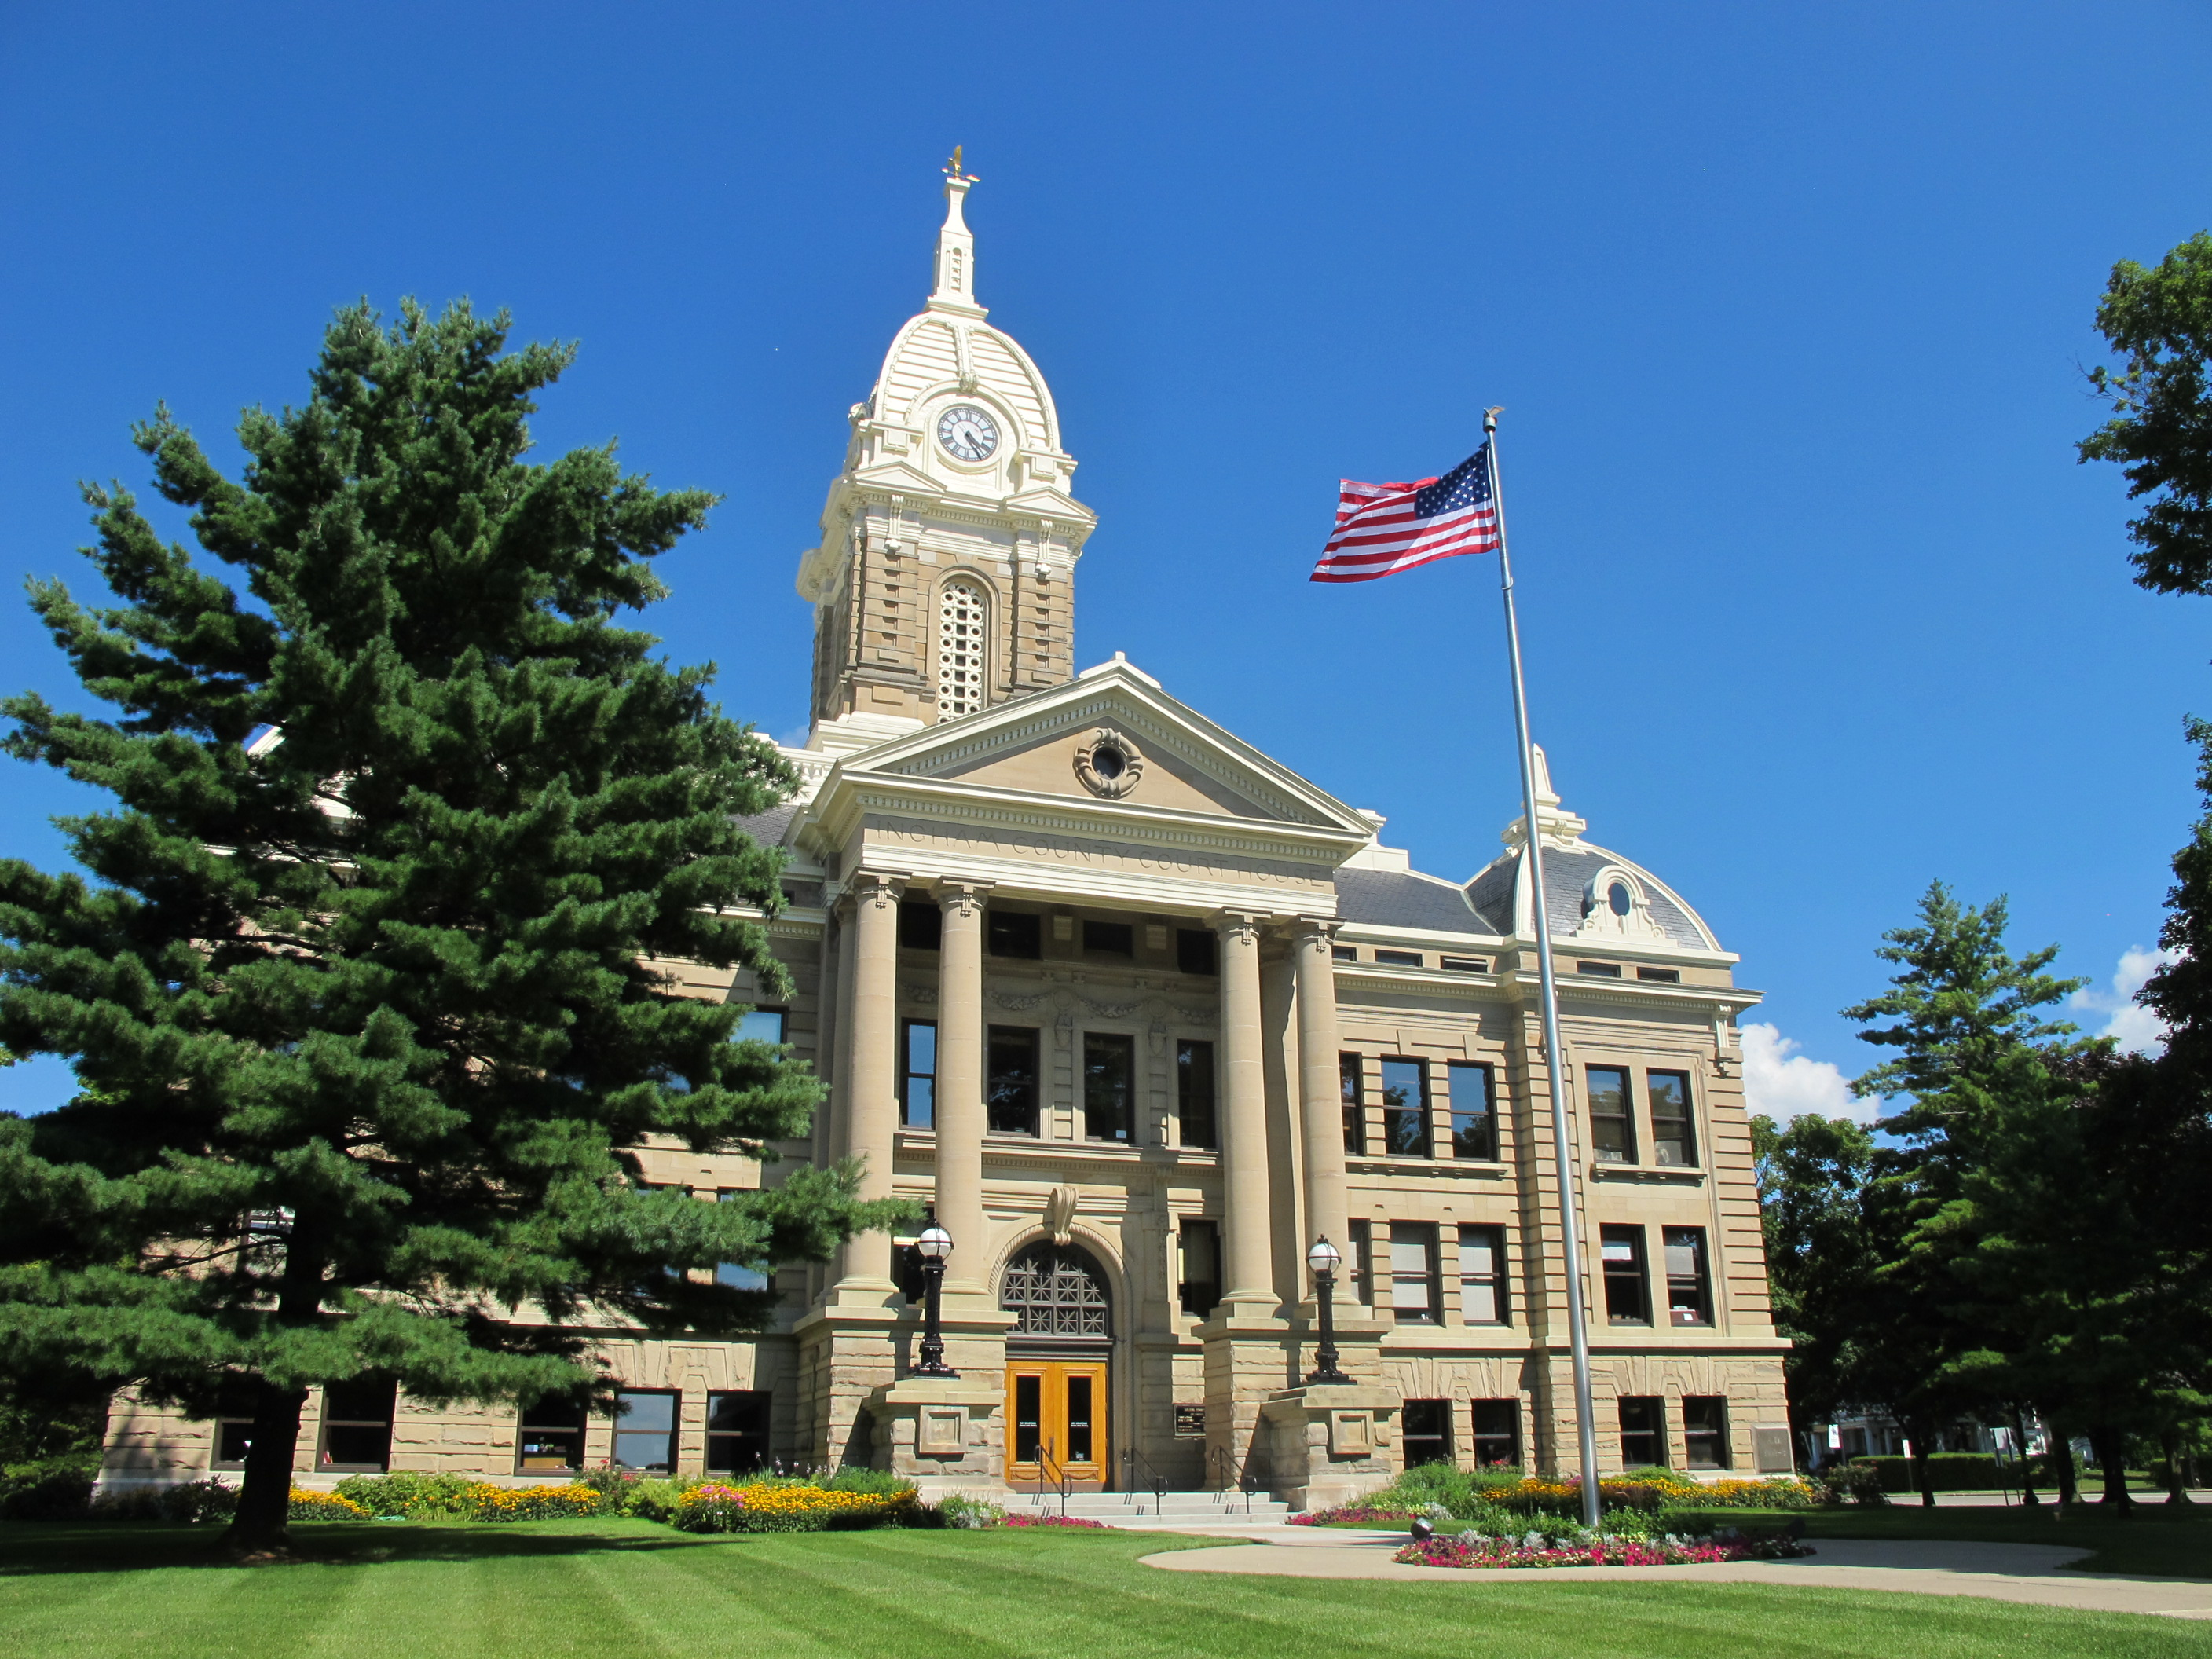 The Ingham County Courthouse in Mason, Michigan, was added to the National Register of Historic Places in 1971.